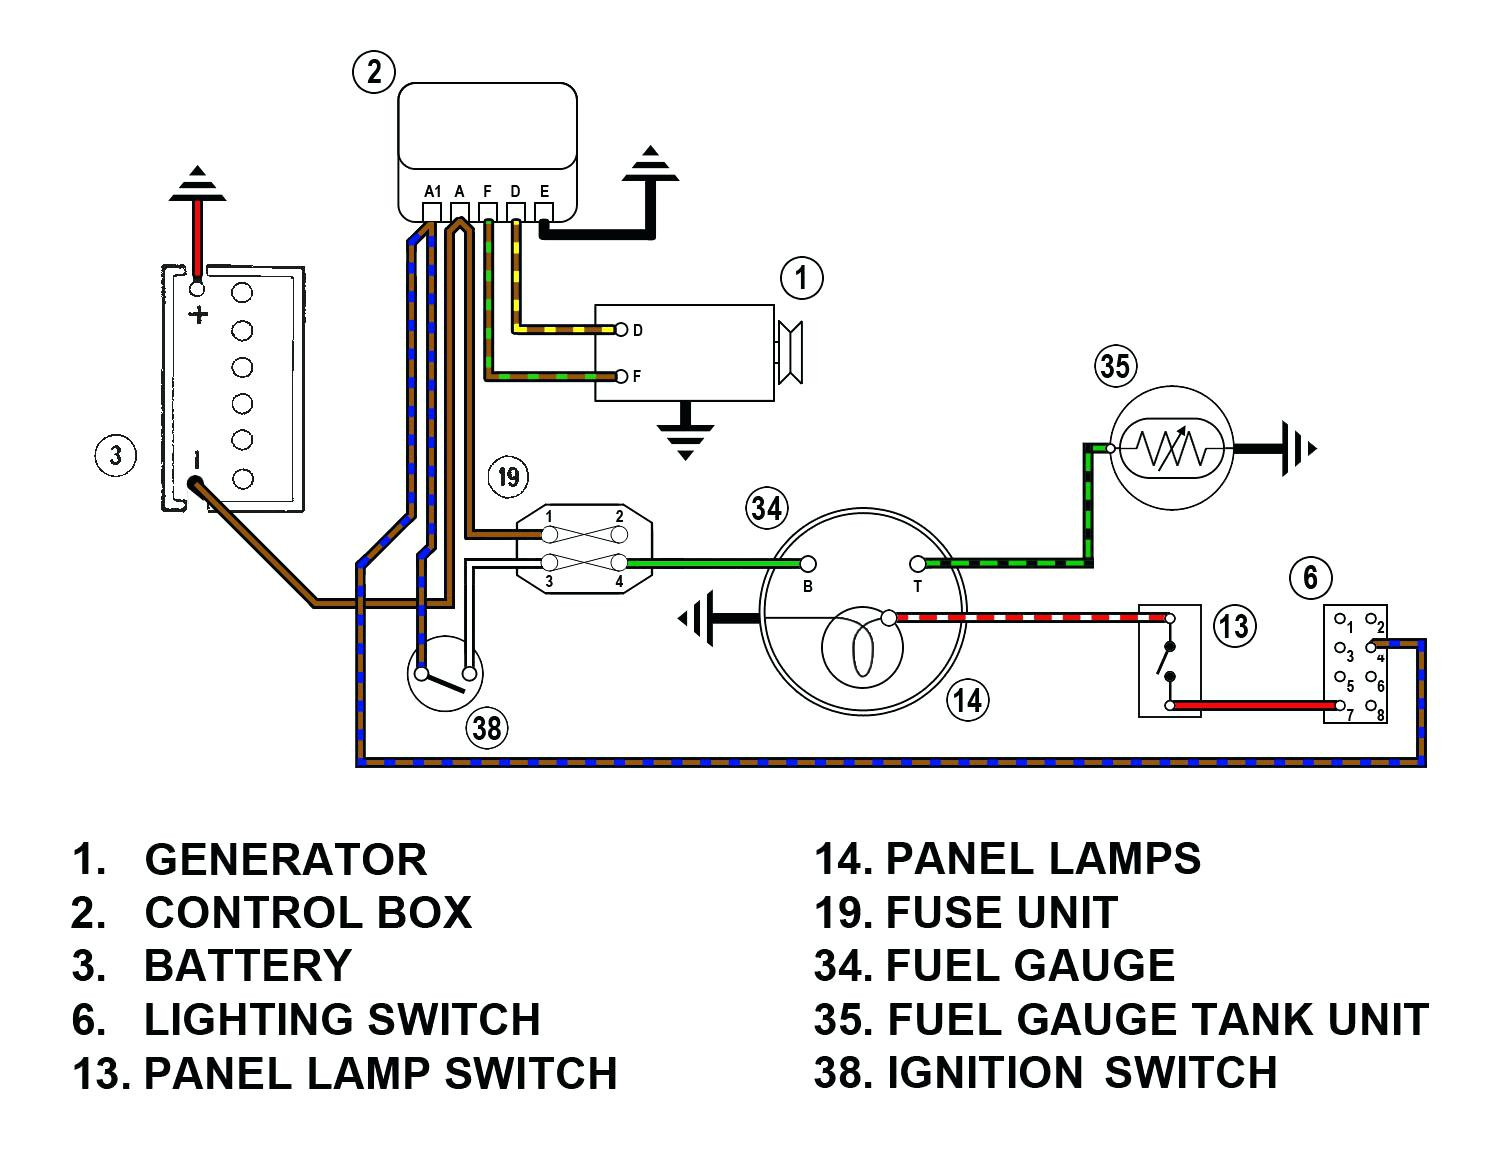 Vdo Fuel Gauge Wiring Diagram Vdo Gauges Wiring Diagrams Darren